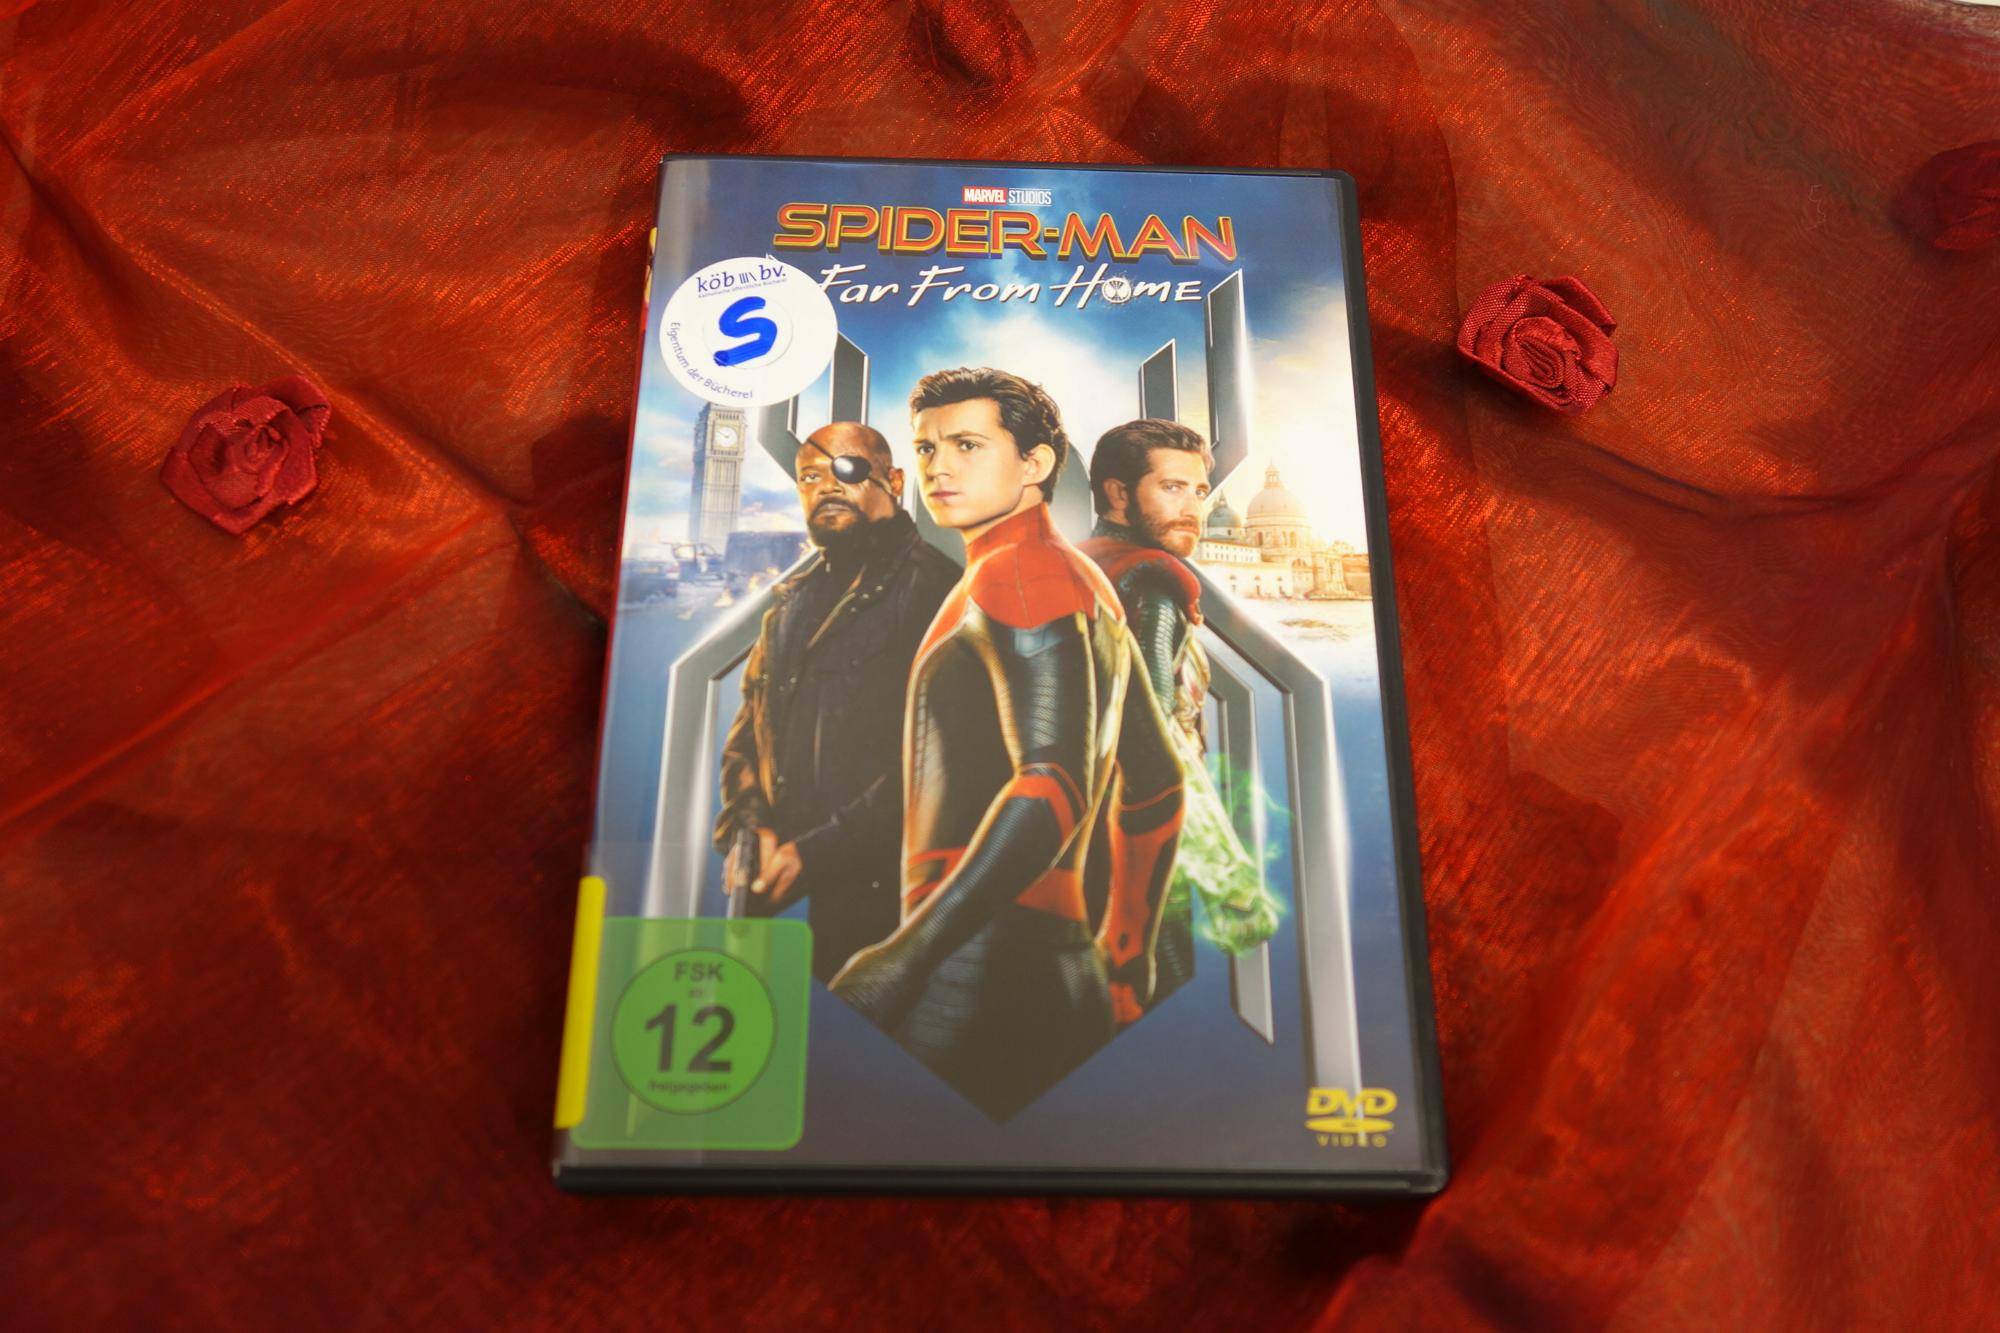 DvD-Spiderman (c) Jutta Liegener